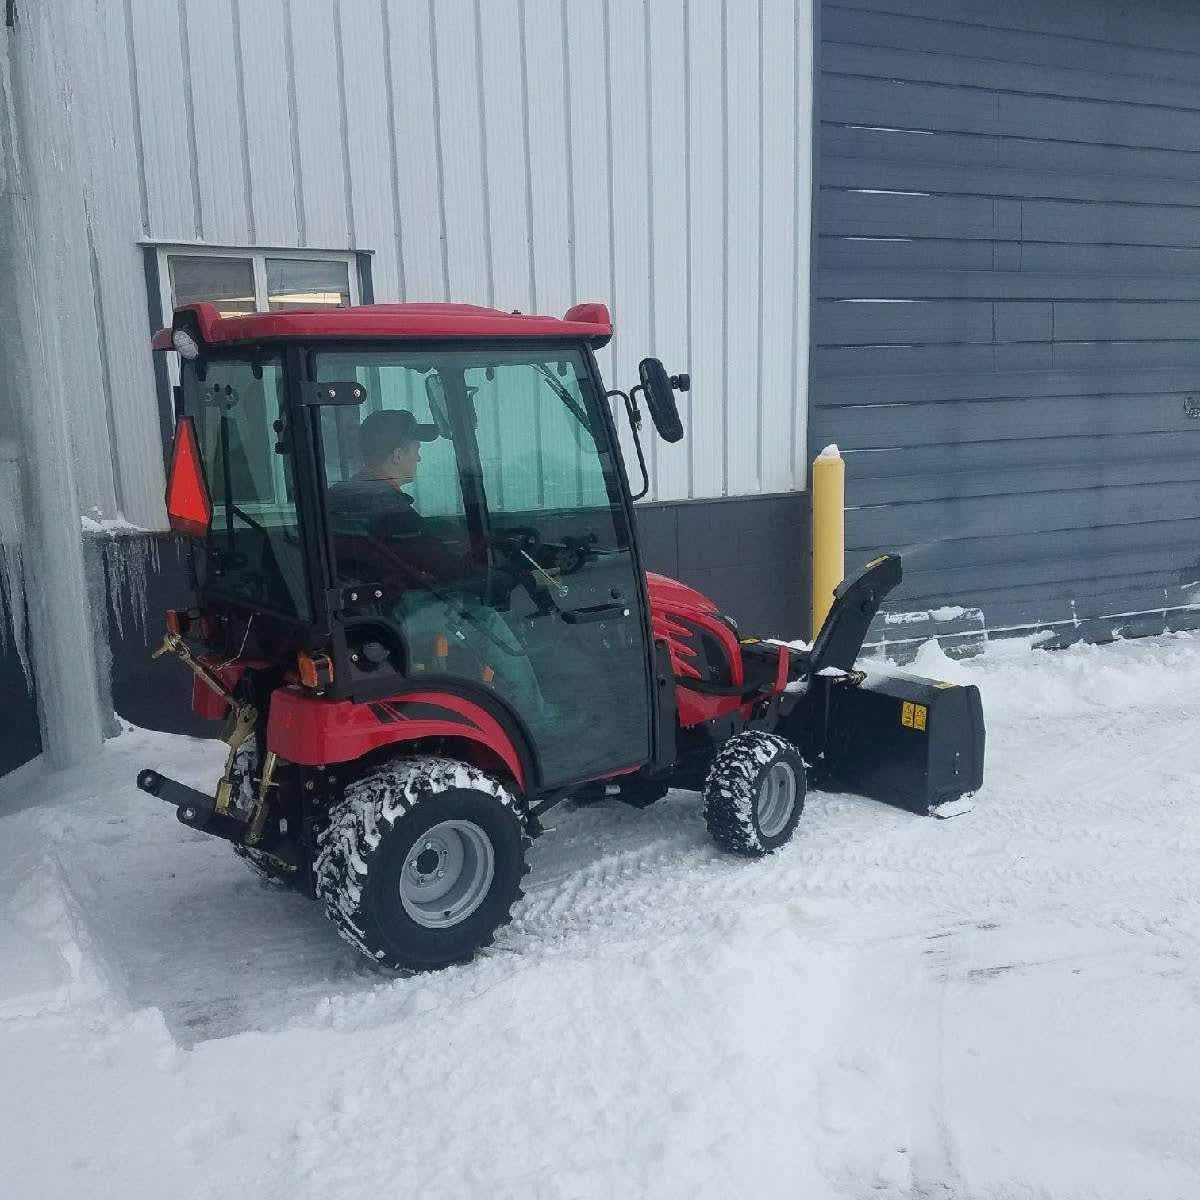 Winter Is Not Over Yet How Do You Clear The Snow Thanks To Ken Dawson For Sending Us This Picture Of A Mahindranorthamerica Emax Snow Blower Pictures Winter